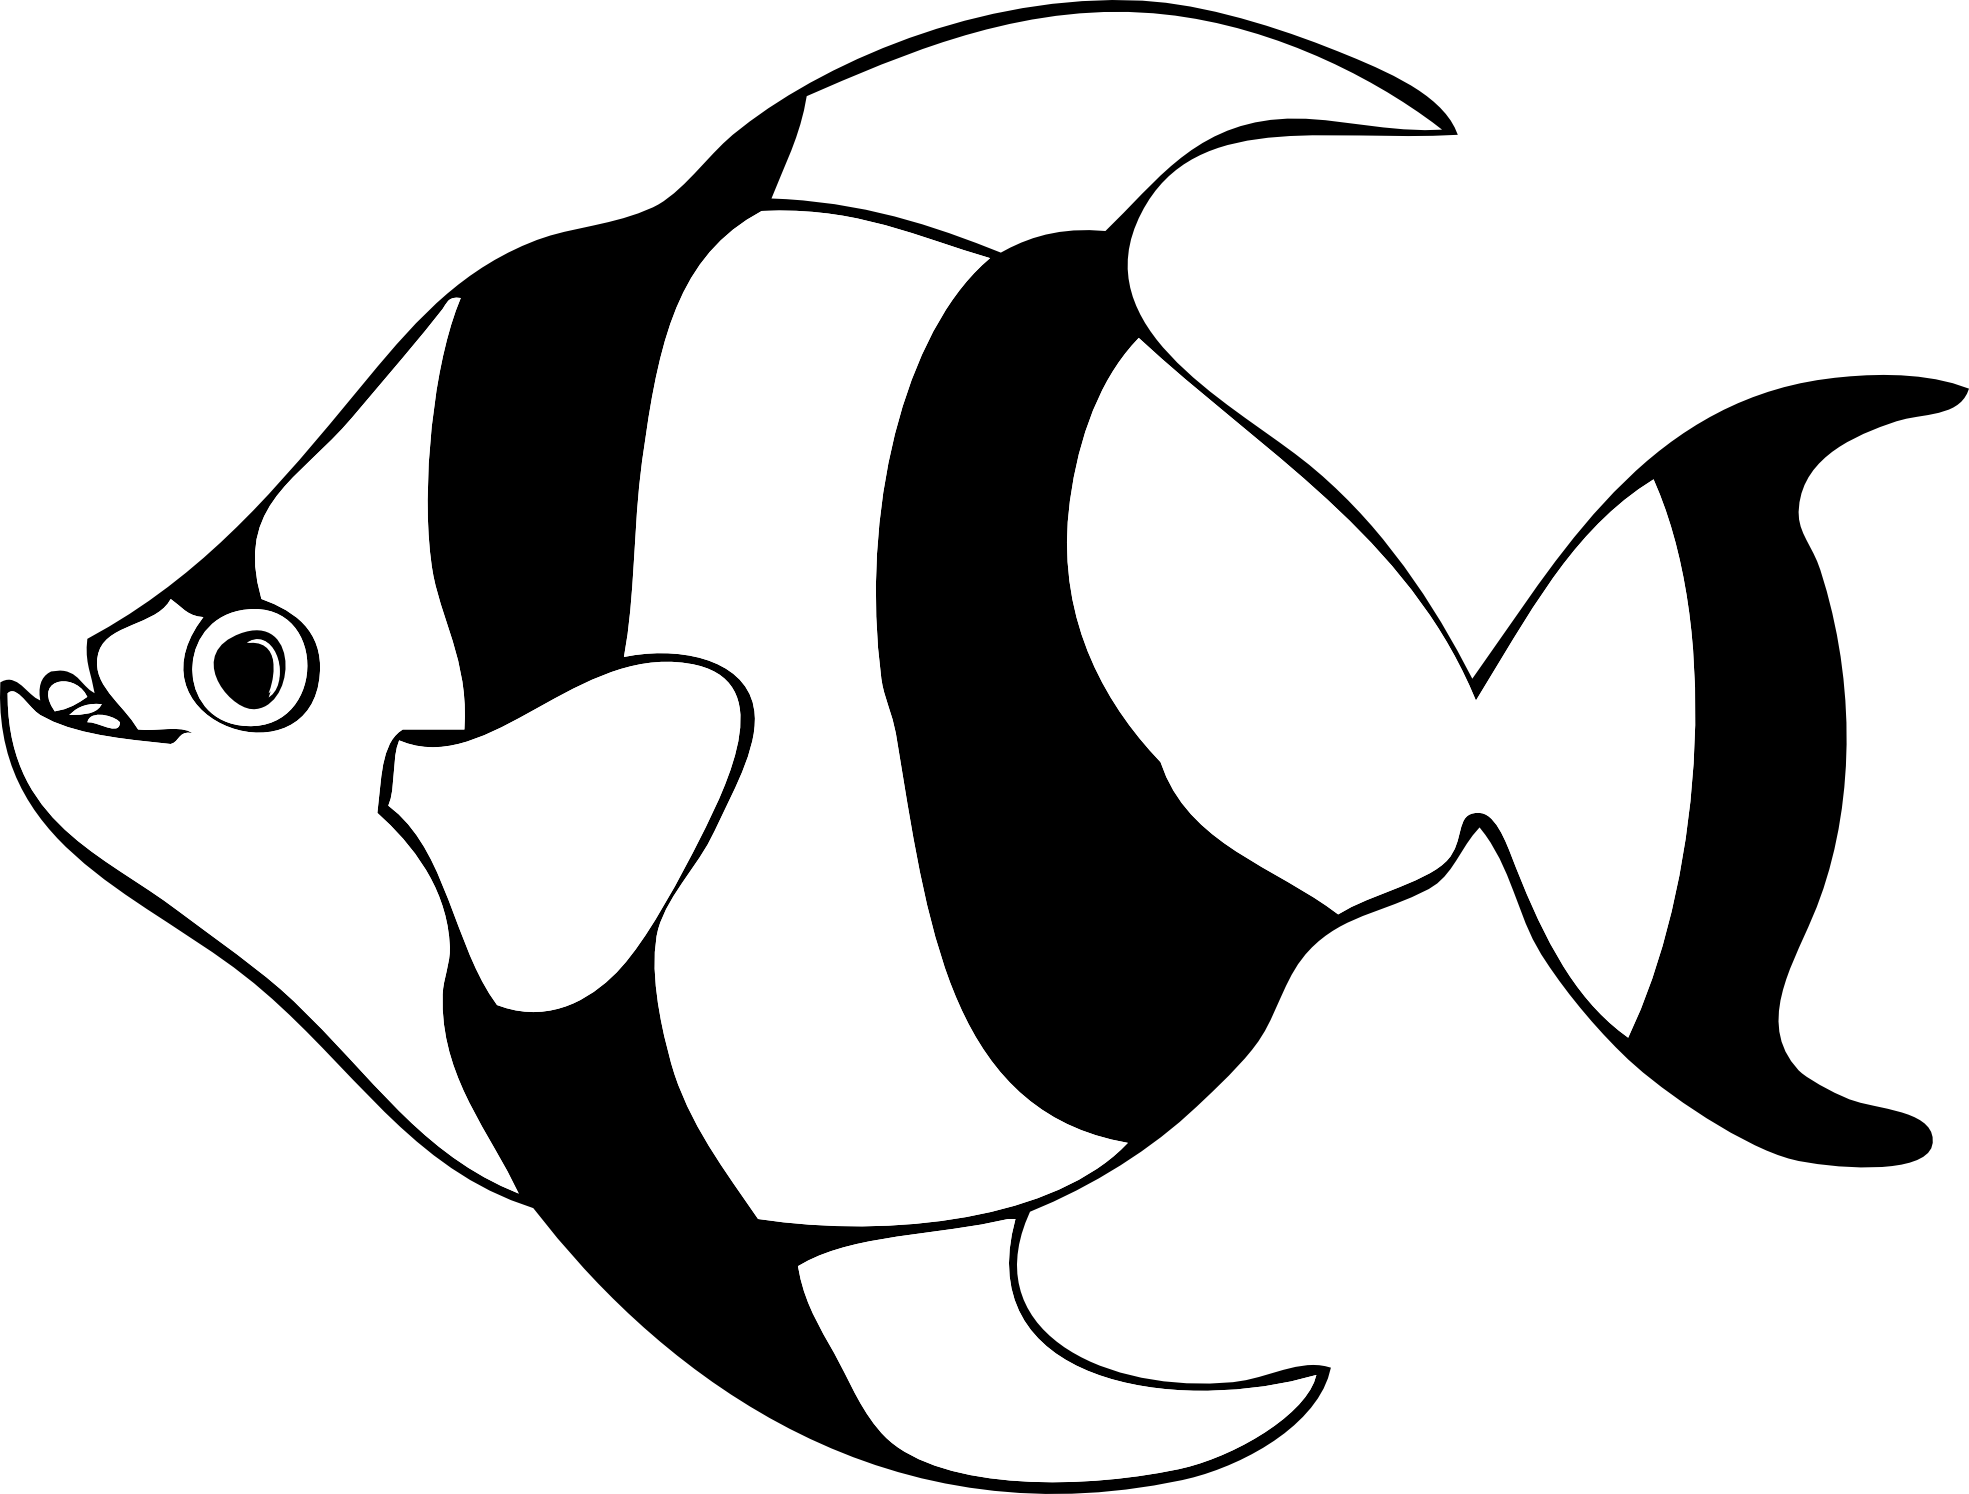 Fish outline clipart black and white clipart panda for Fish clipart images